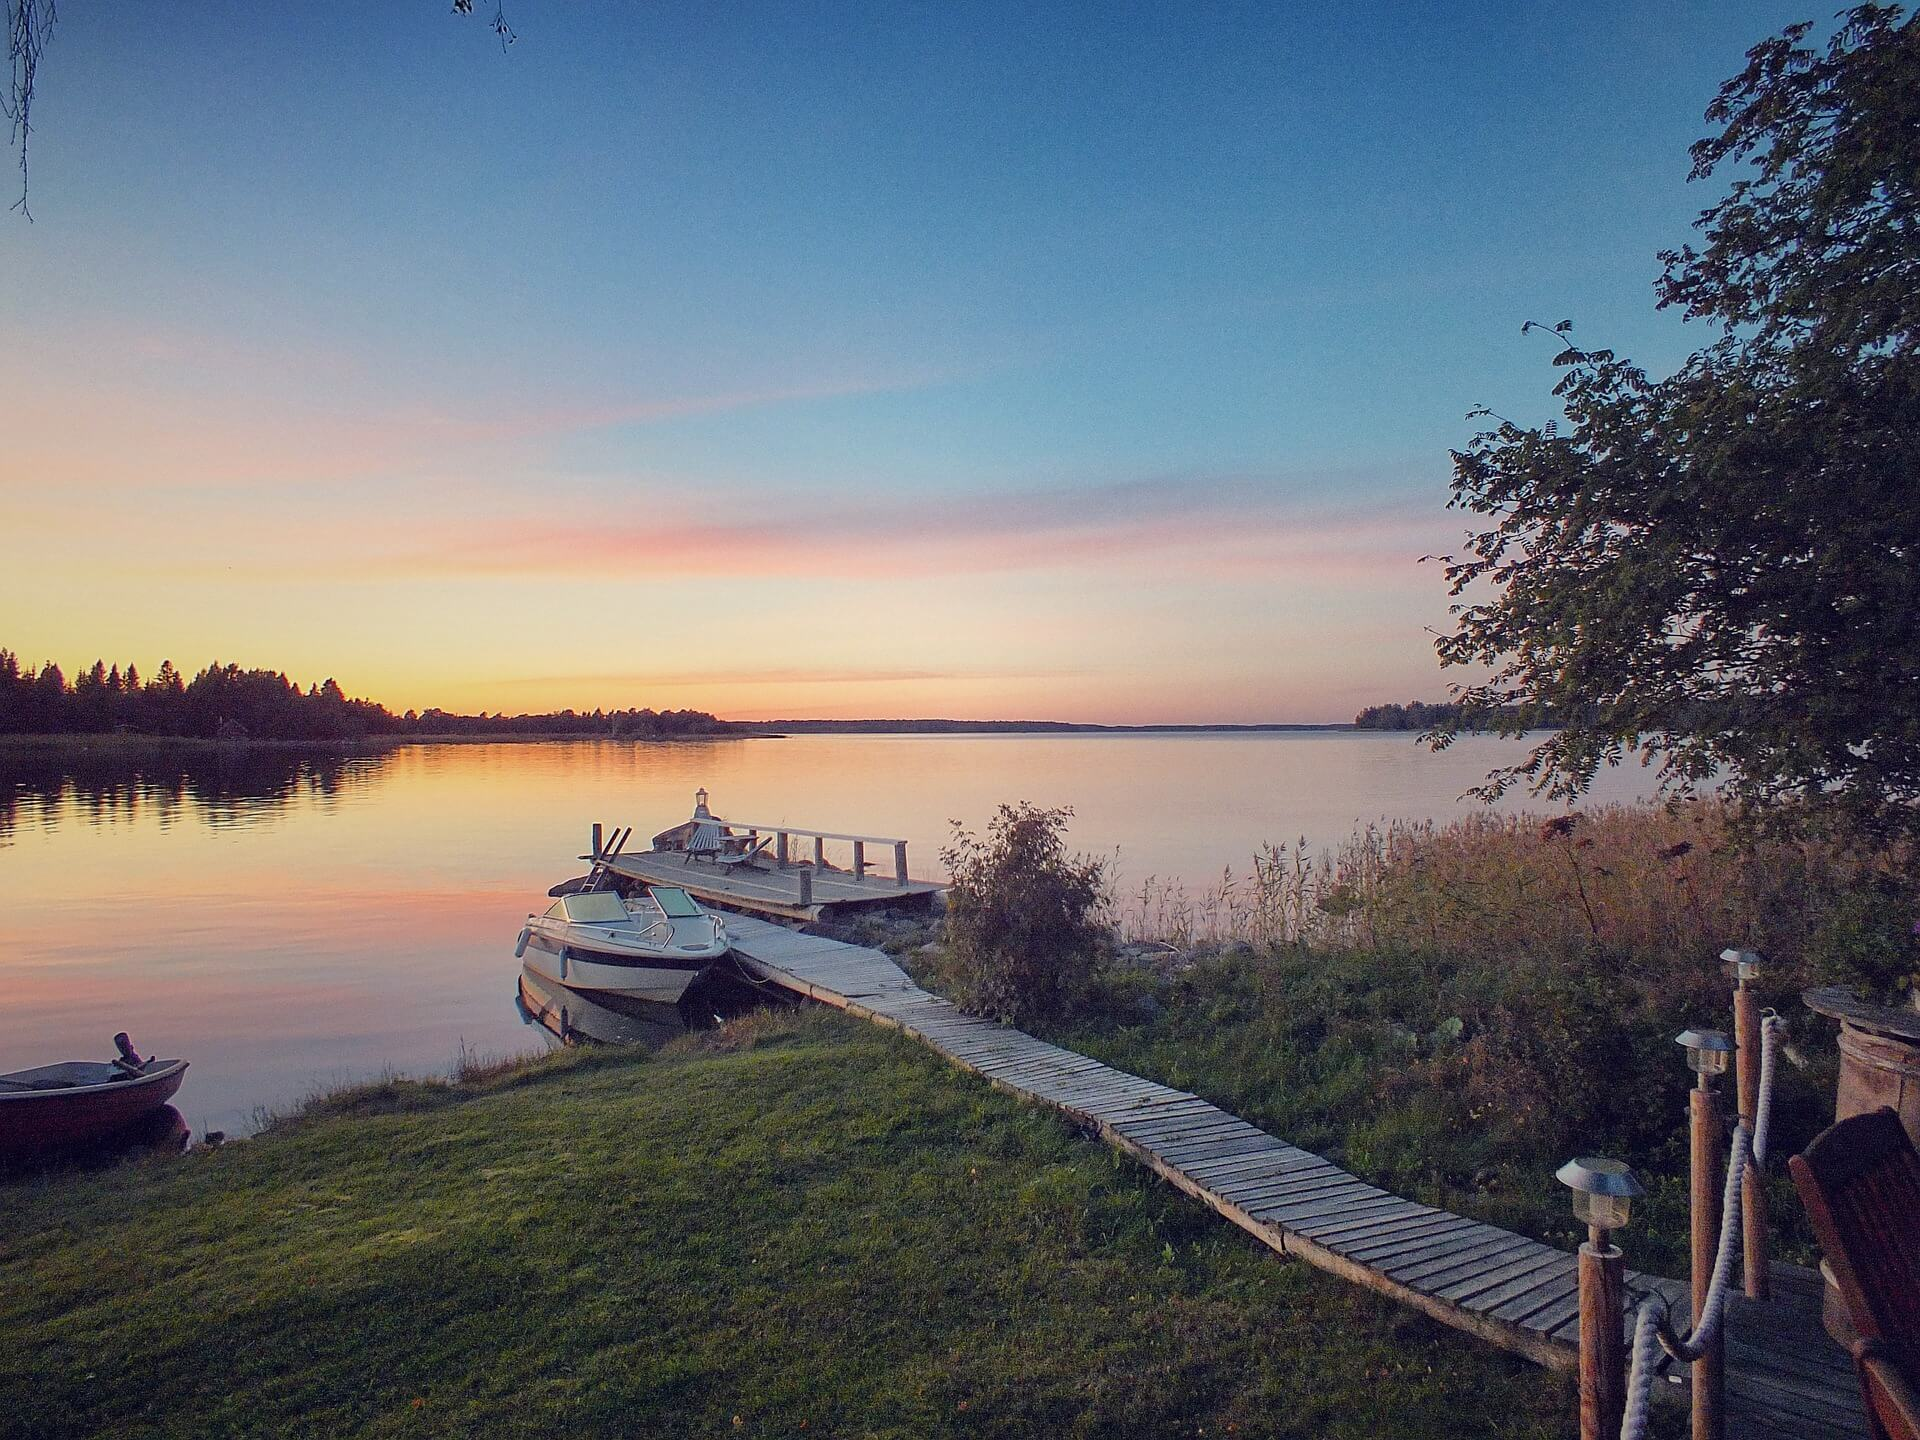 5 Fun Facts You Should Know About Finland